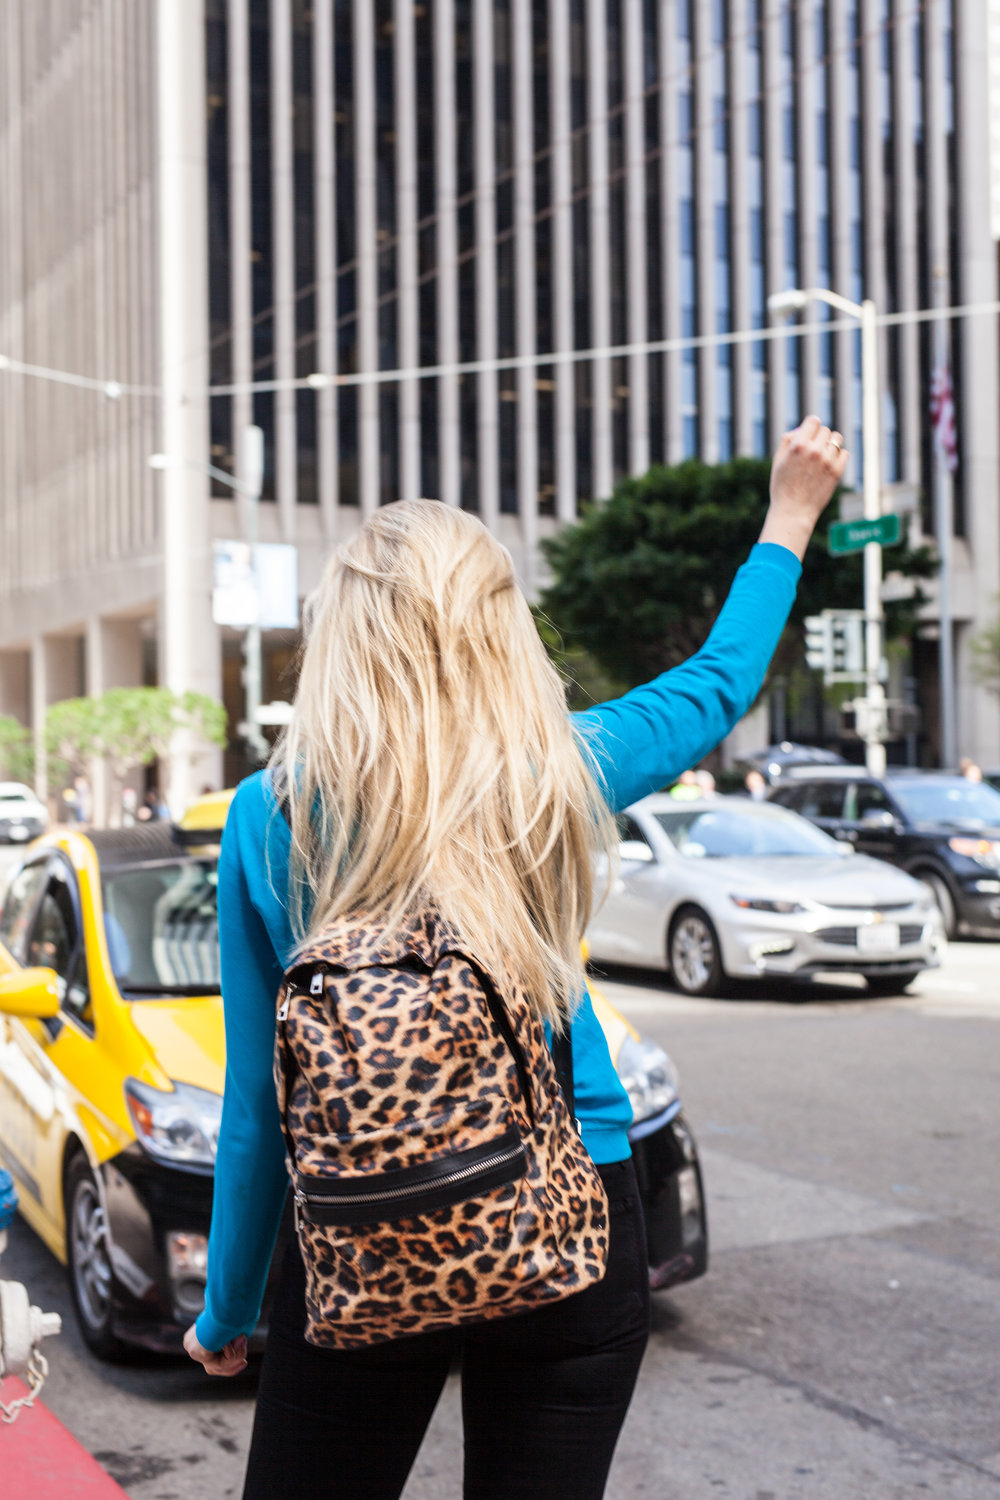 Blonde Wearing Leopard Print Backpack